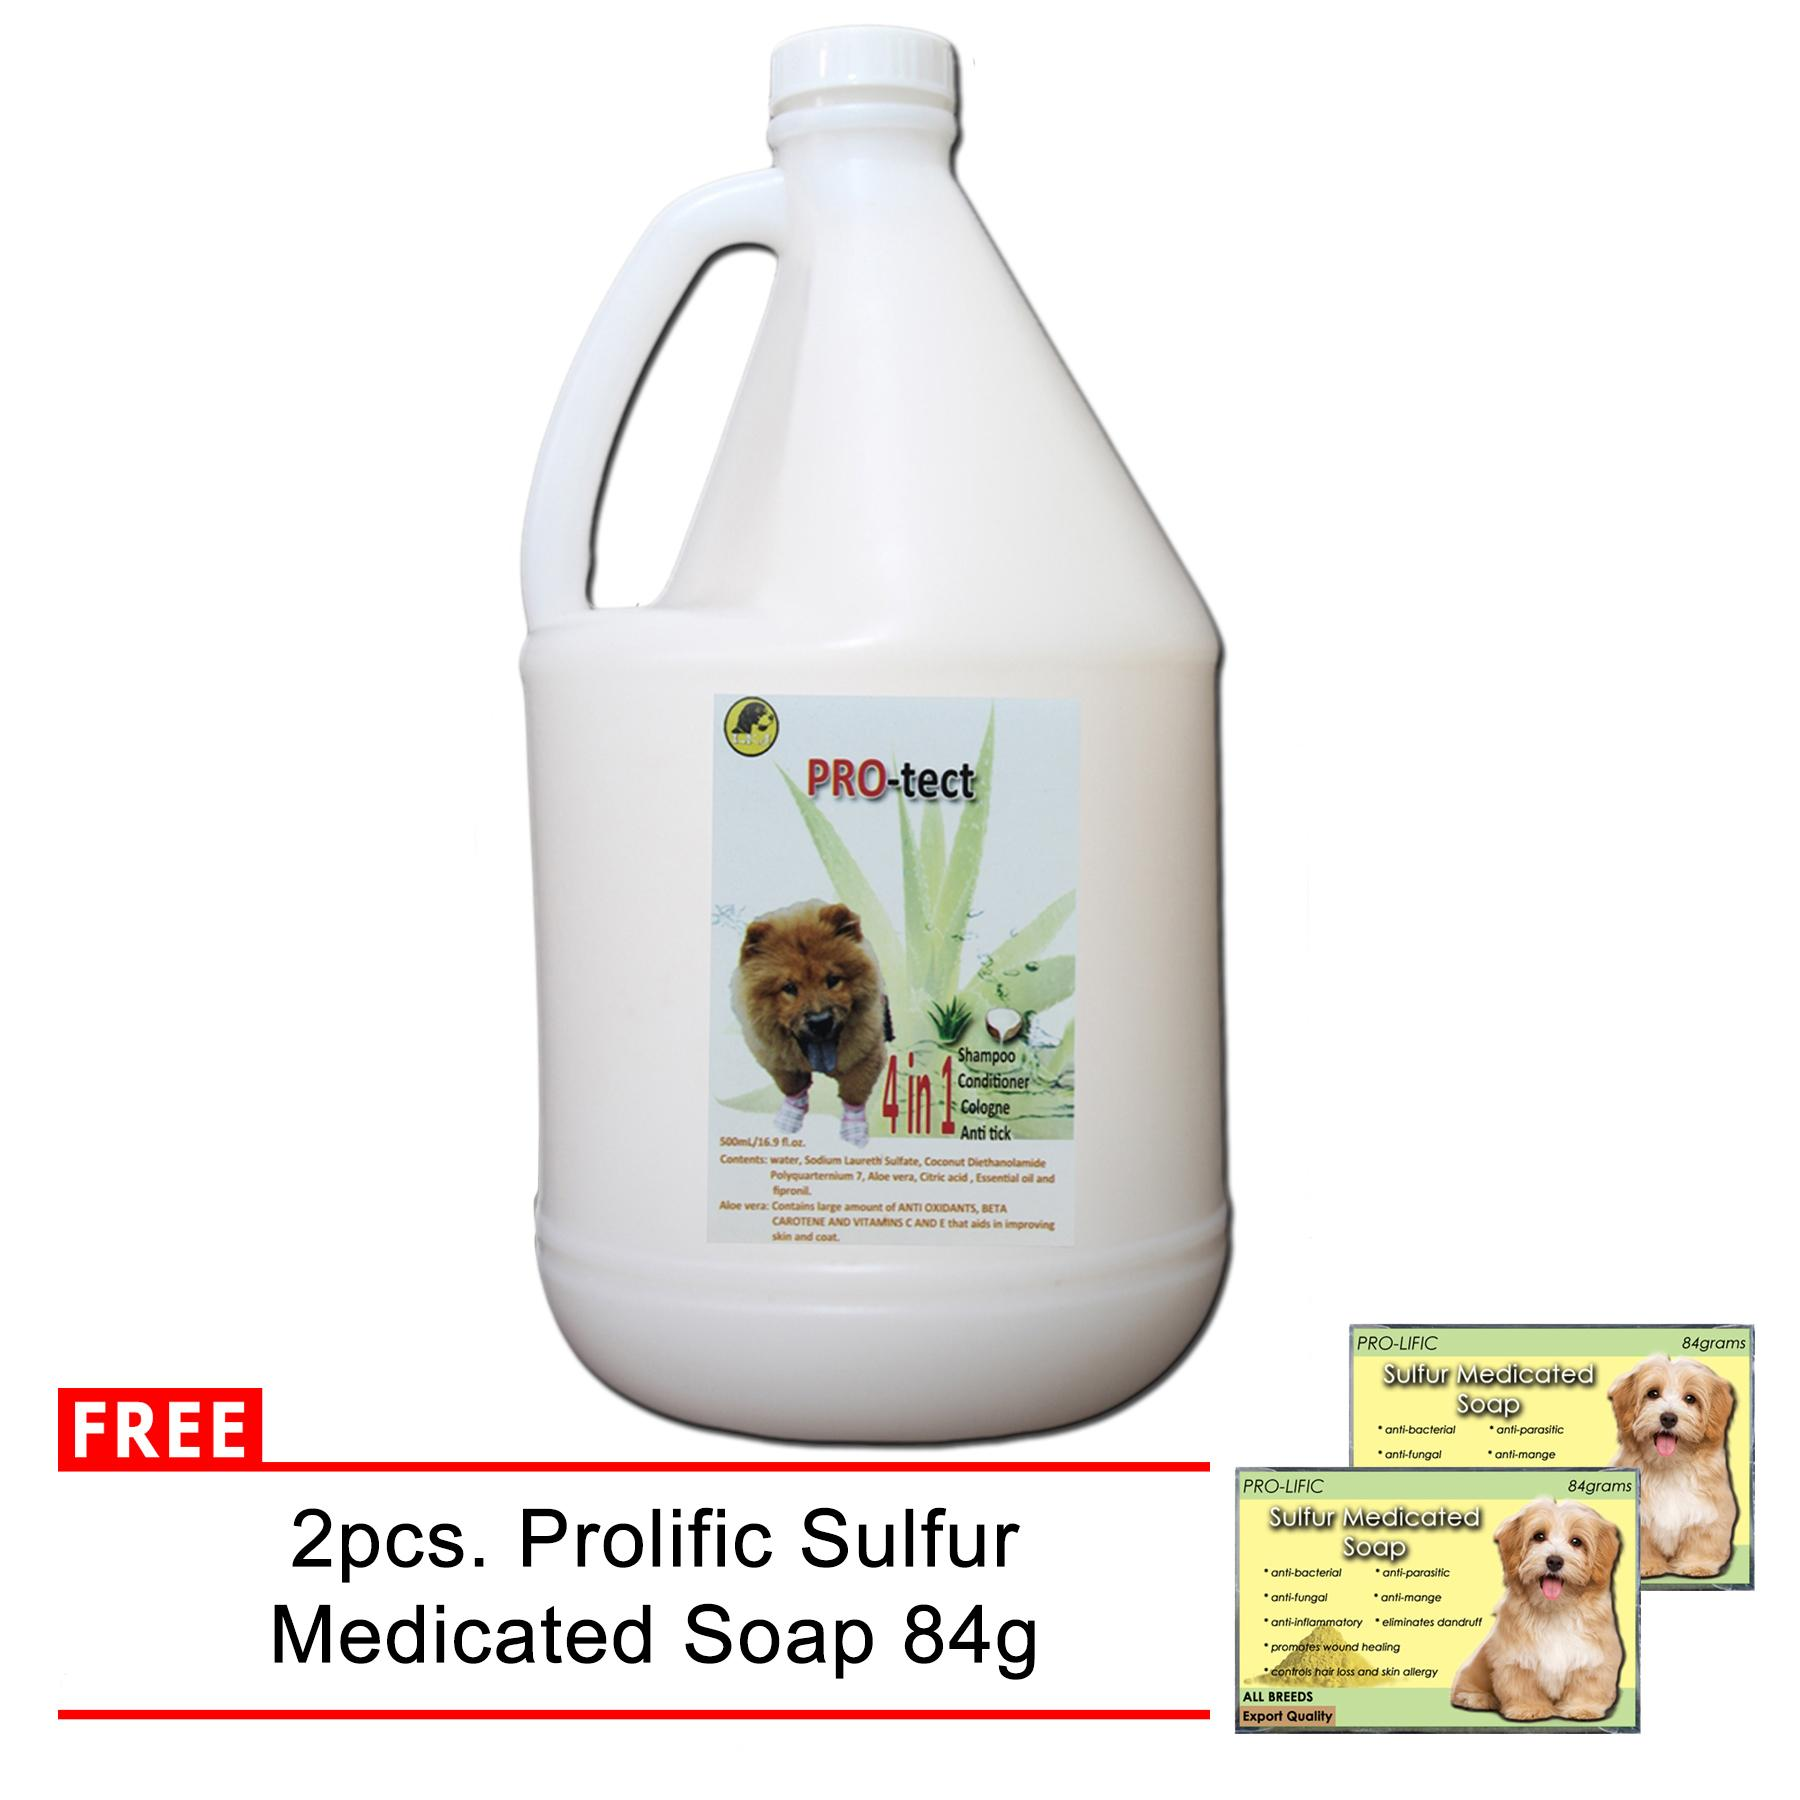 4 in 1 dog and cat Shampoo, Conditioner, Cologne, and Anti-tick 1 gallon  (white) With Free 2 pcs  Prolific Sulfur Medicated Soap 84 g